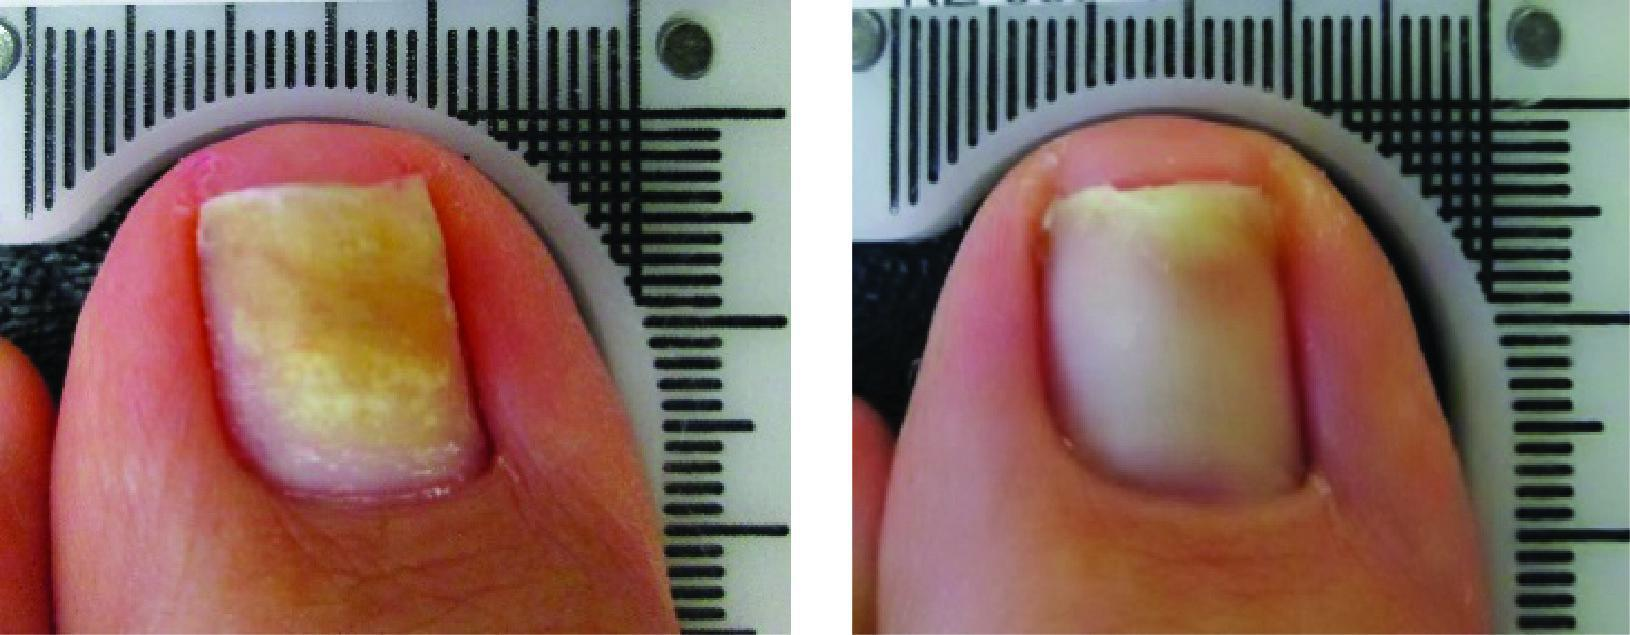 Before and After Laser Therapy For Toenail Fungus Patient 1